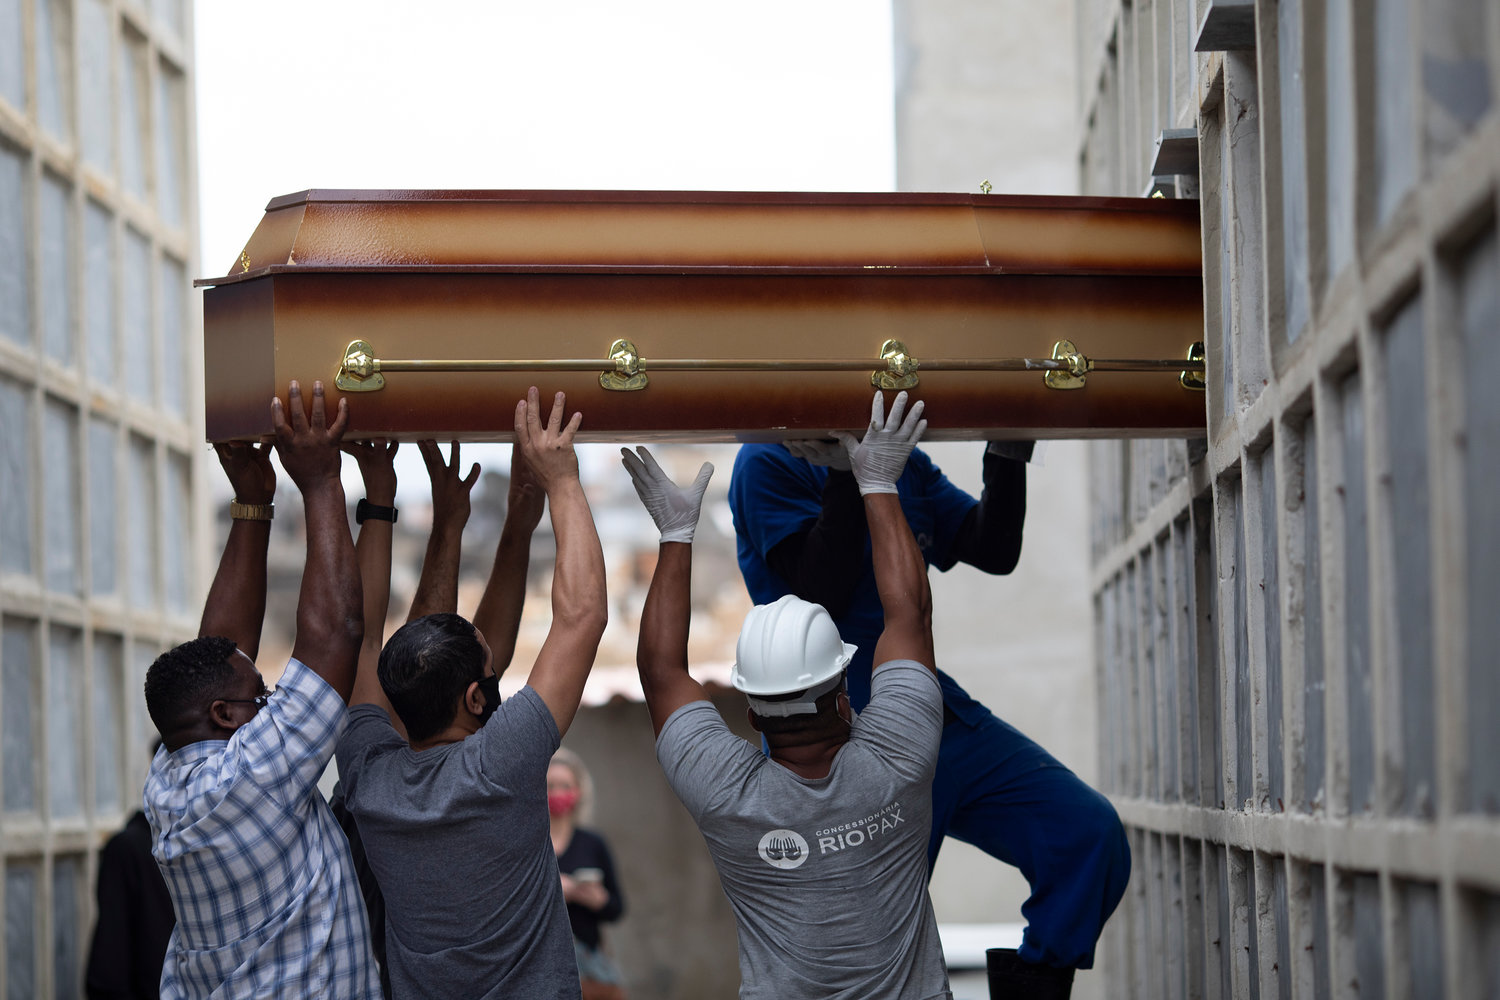 FILE - In this April 13, 2021, file photo, the remains of a woman who died from complications related to COVID-19 are placed into a niche by cemetery workers and relatives at the Inahuma cemetery in Rio de Janeiro, Brazil. The global death toll from the coronavirus topped a staggering 3 million people Saturday, April 17, 2021, amid repeated setbacks in the worldwide vaccination campaign and a deepening crisis in places such as Brazil, India and France. (AP Photo/Silvia Izquierdo, File)